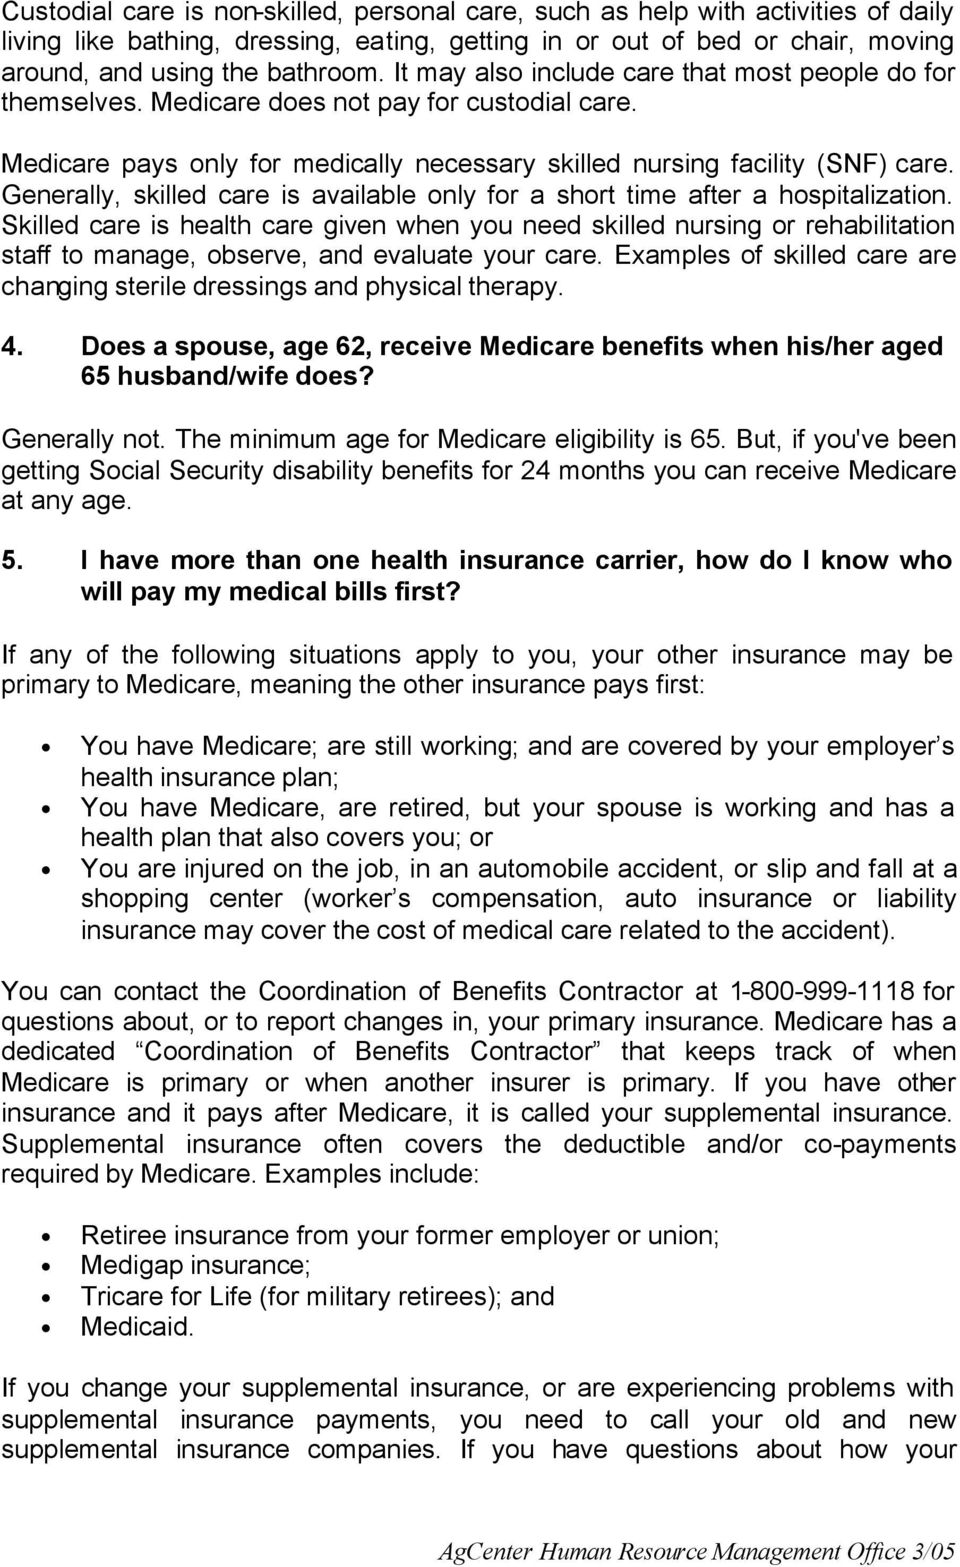 How To Apply For Medicare When Disabled Solution For How To For Generally,  Skilled Care Is Available Only For A Short Time After A Hospitalization